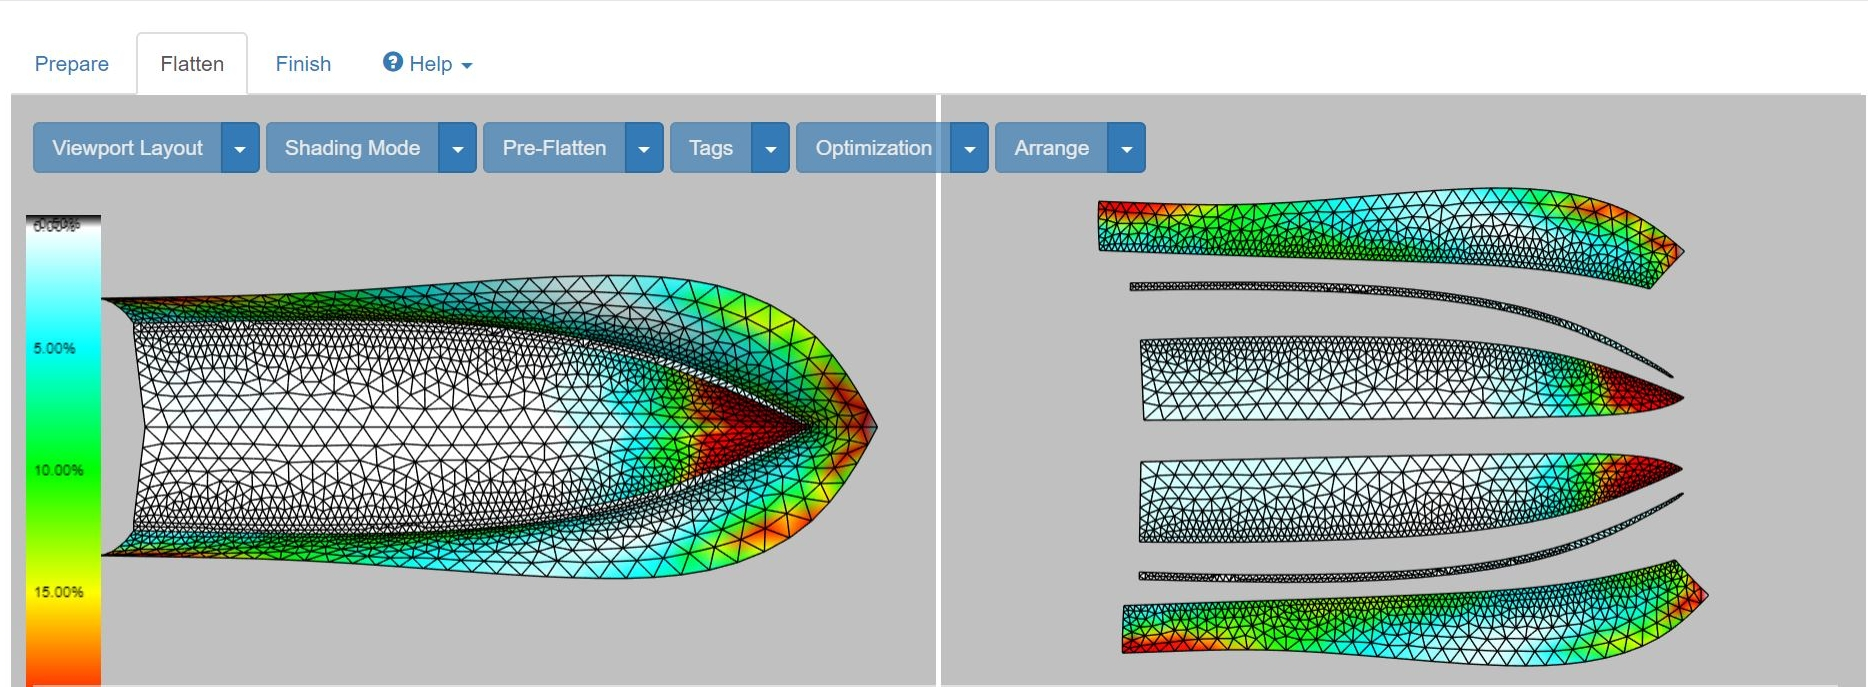 ExactFlat unique algorithms simulate the actual material behavior and provide visual information on strain,the biggest factor impacting pattern fix.